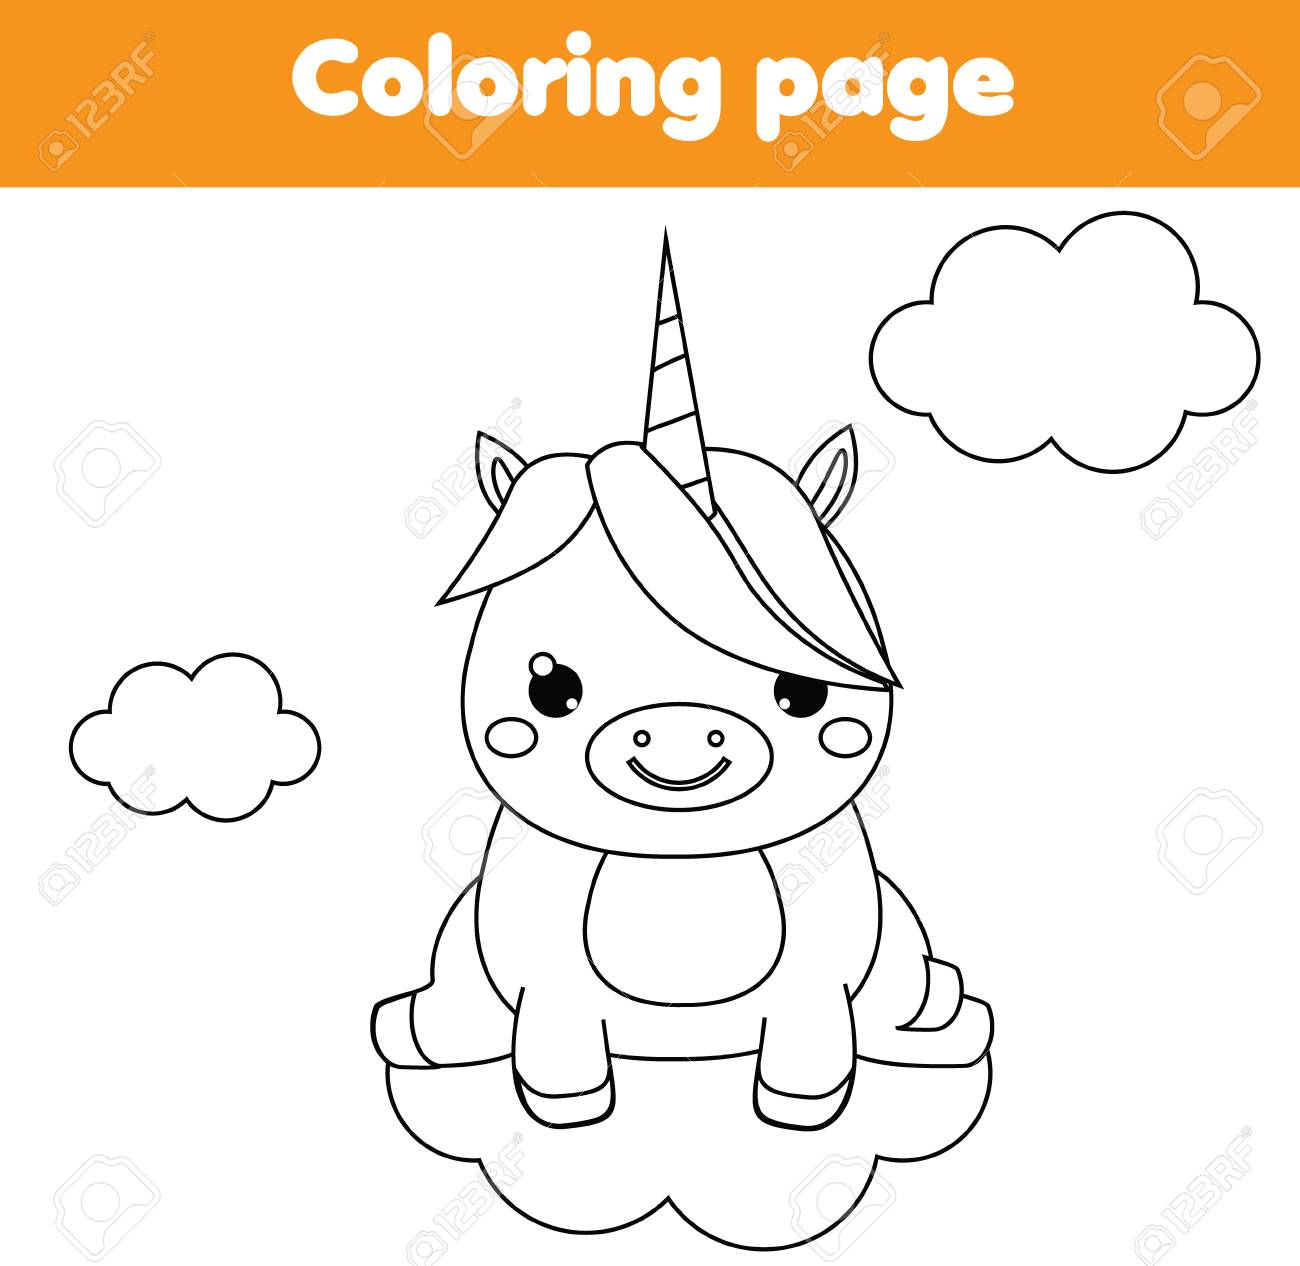 Unicorn coloring page. Educational children game. Drawing printable..